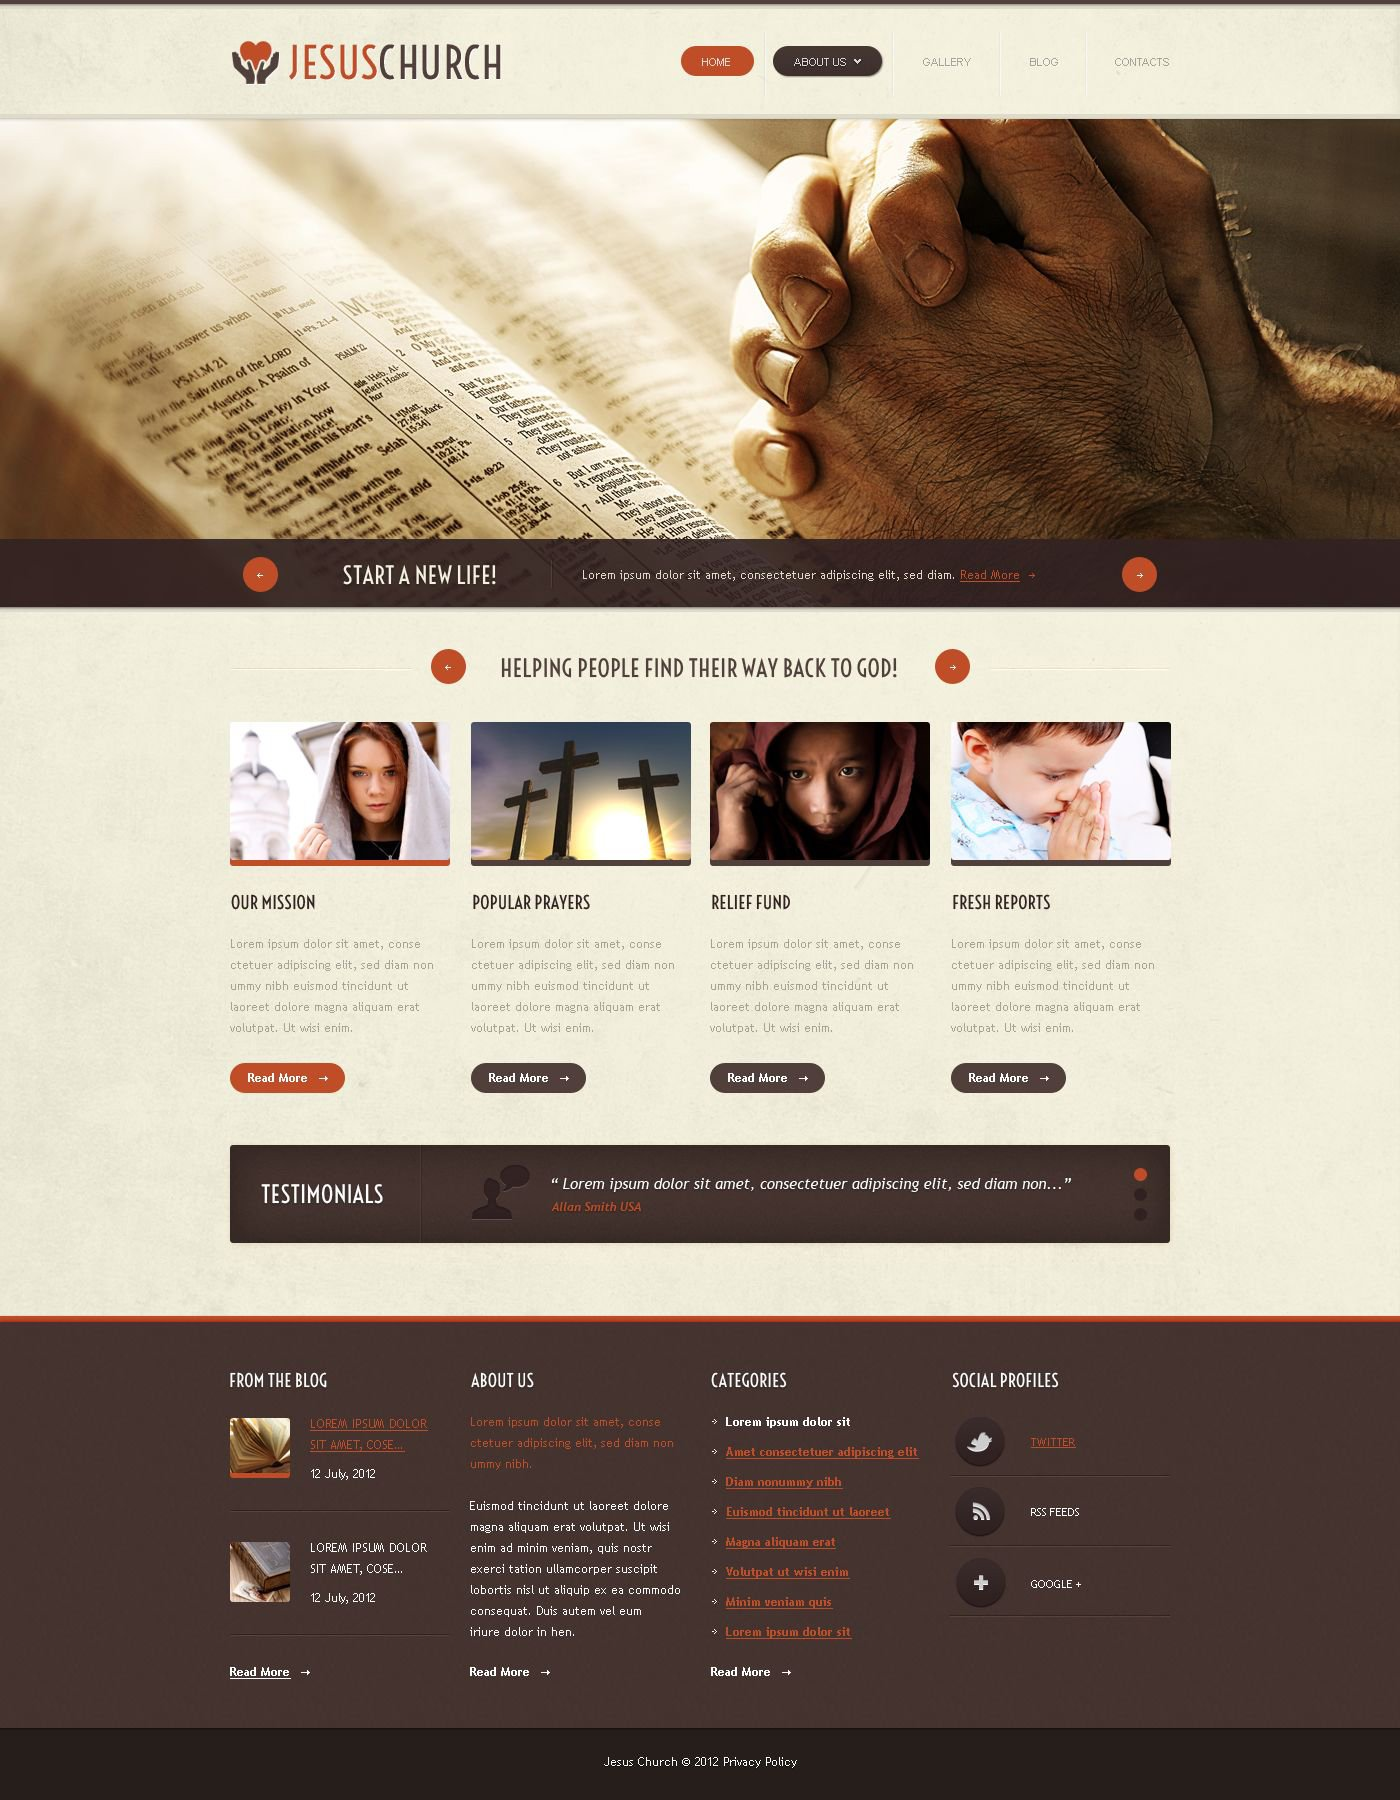 The Jesus Church Religious Responsive Javascript Animated Design 52974, one of the best website templates of its kind (religious, most popular), also known as Jesus church religious website template, religion website template, God family care website template, education website template, Bible mission website template, community website template, sermon website template, priest website template, clergyman website template, choir website template, health website template, Sunday school website template, archive website template, credence website template, faith website template, belief in God kindness website template, confession website template, homily website template, sermon website template, help website template, support website template, Christian catholic website template, prayer and related with Jesus church religious, religion, God family care, education, Bible mission, community, sermon, priest, clergyman, choir, health, Sunday school, archive, credence, faith, belief in God kindness, confession, homily, sermon, help, support, Christian catholic, prayer, etc.